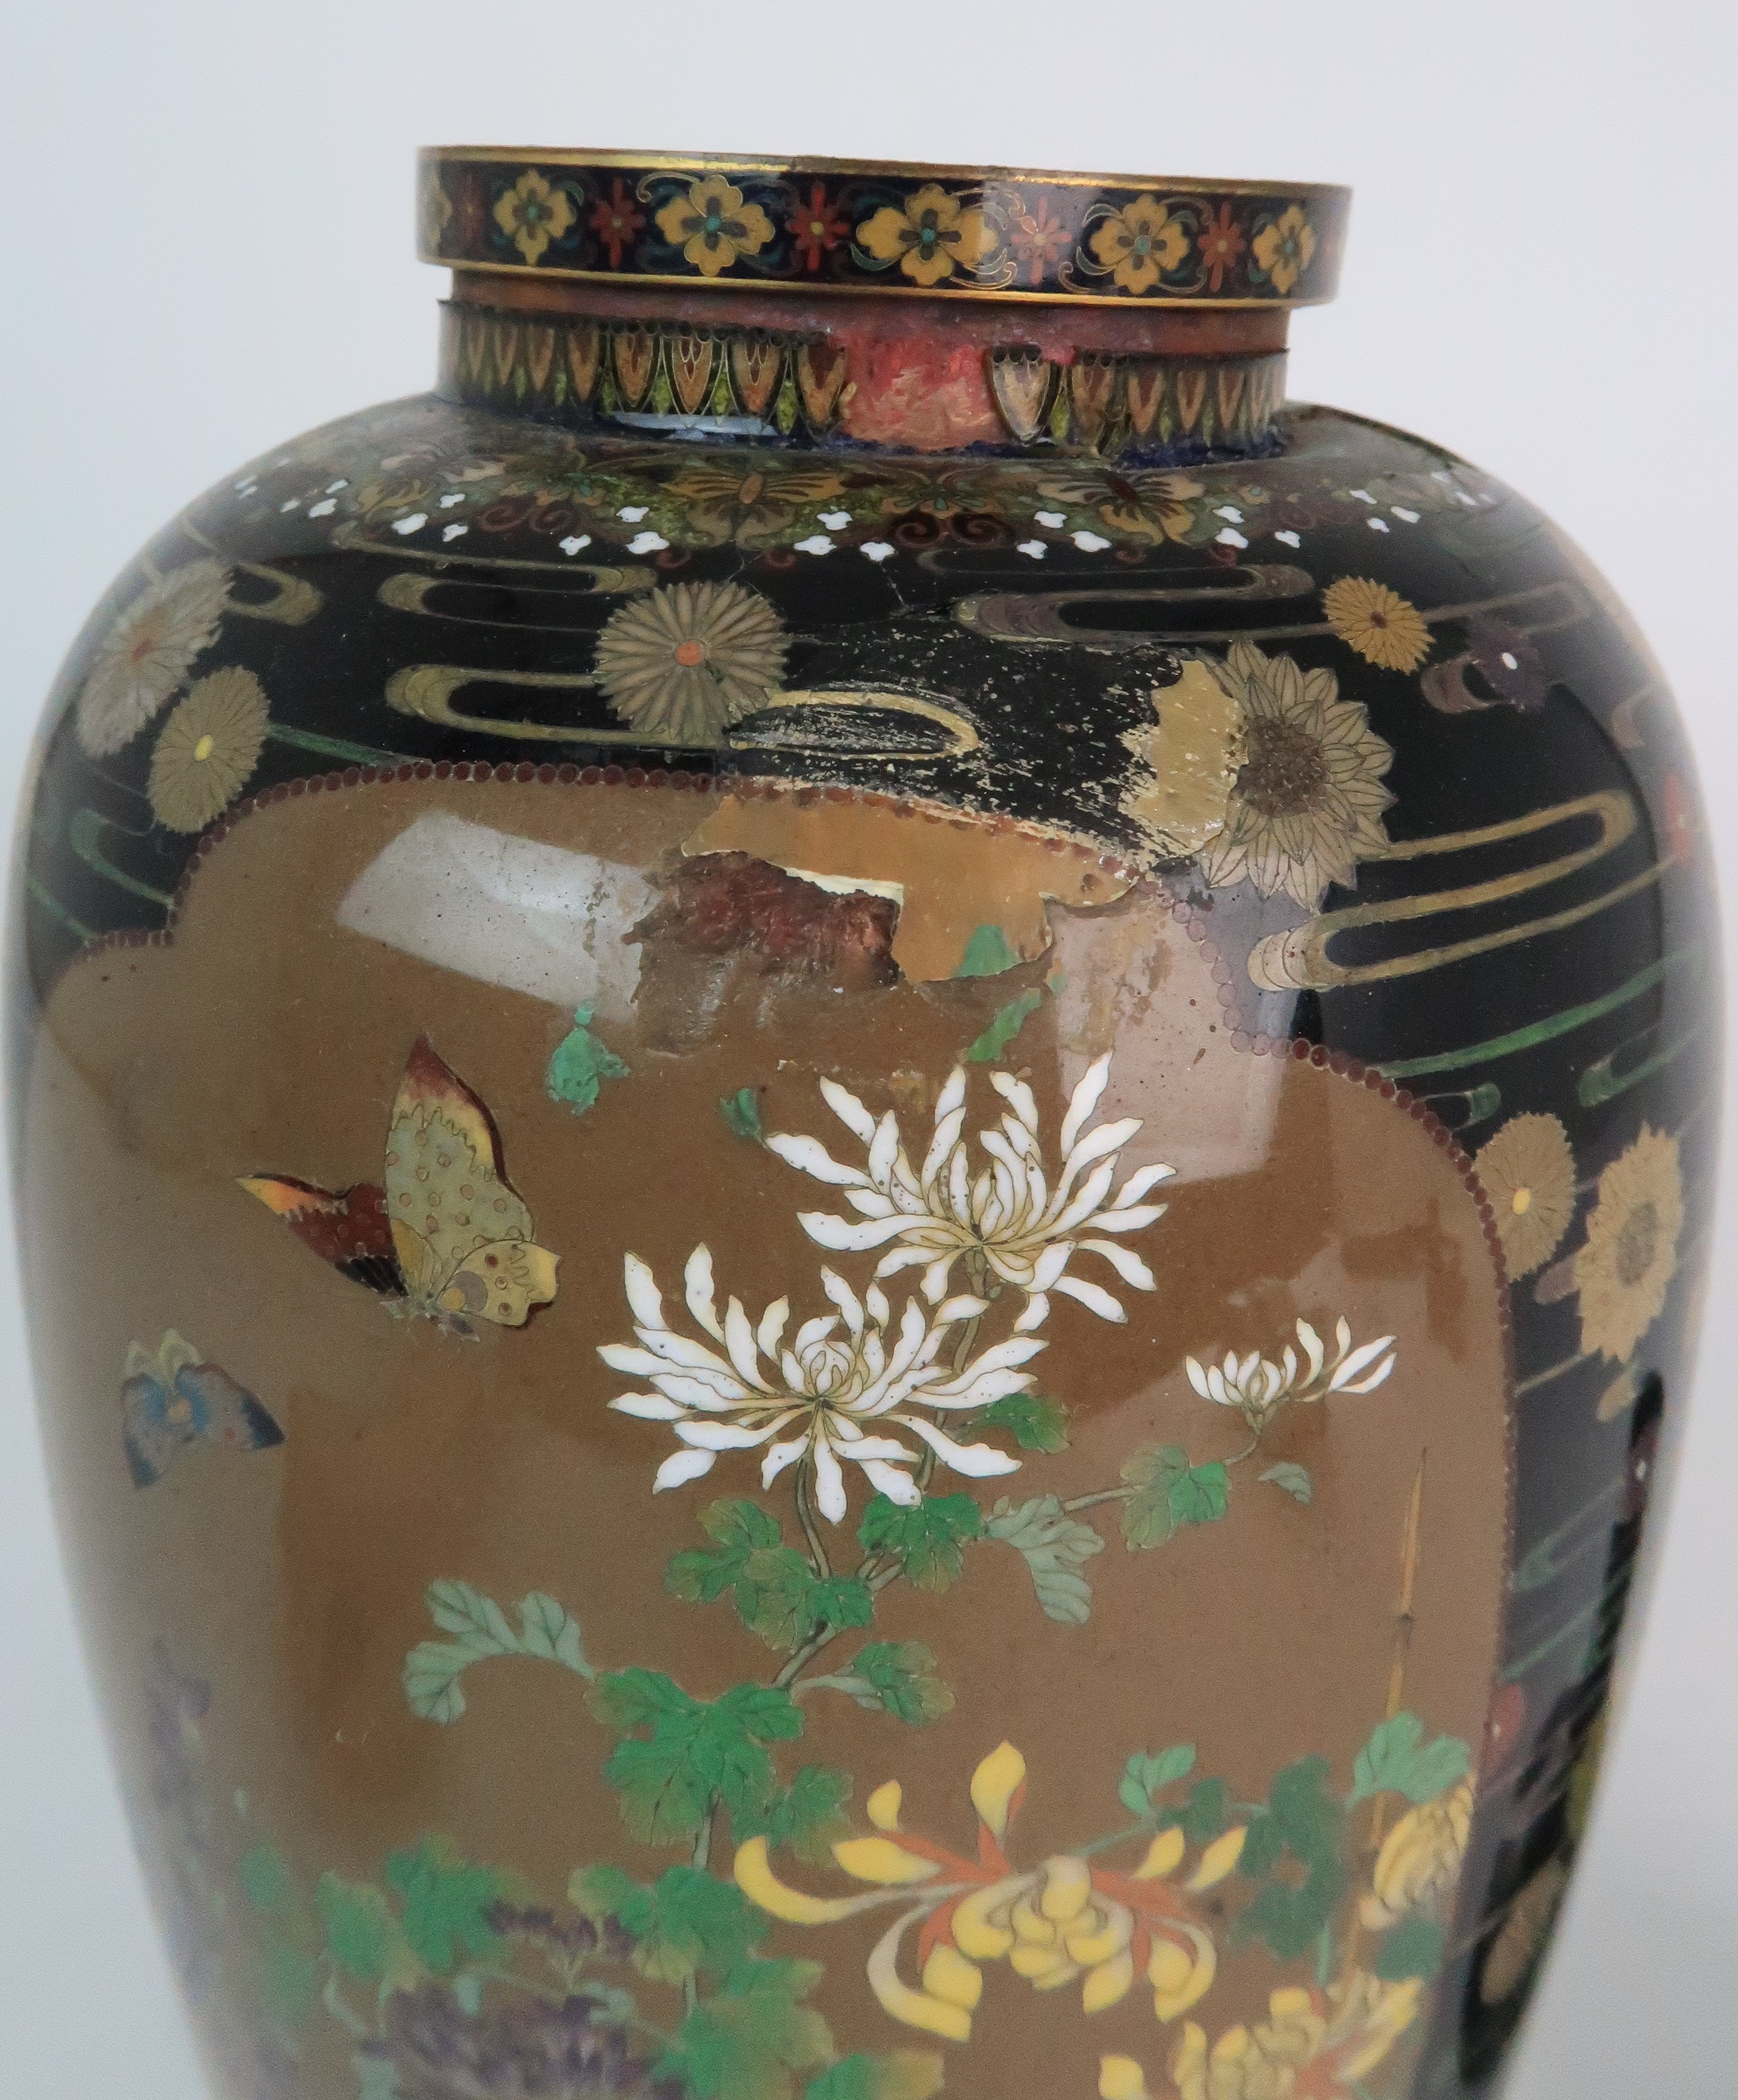 A JAPANESE CLOISONNE BALUSTER VASE finely decorated with panels of birds, butterflies, plants and - Image 3 of 15